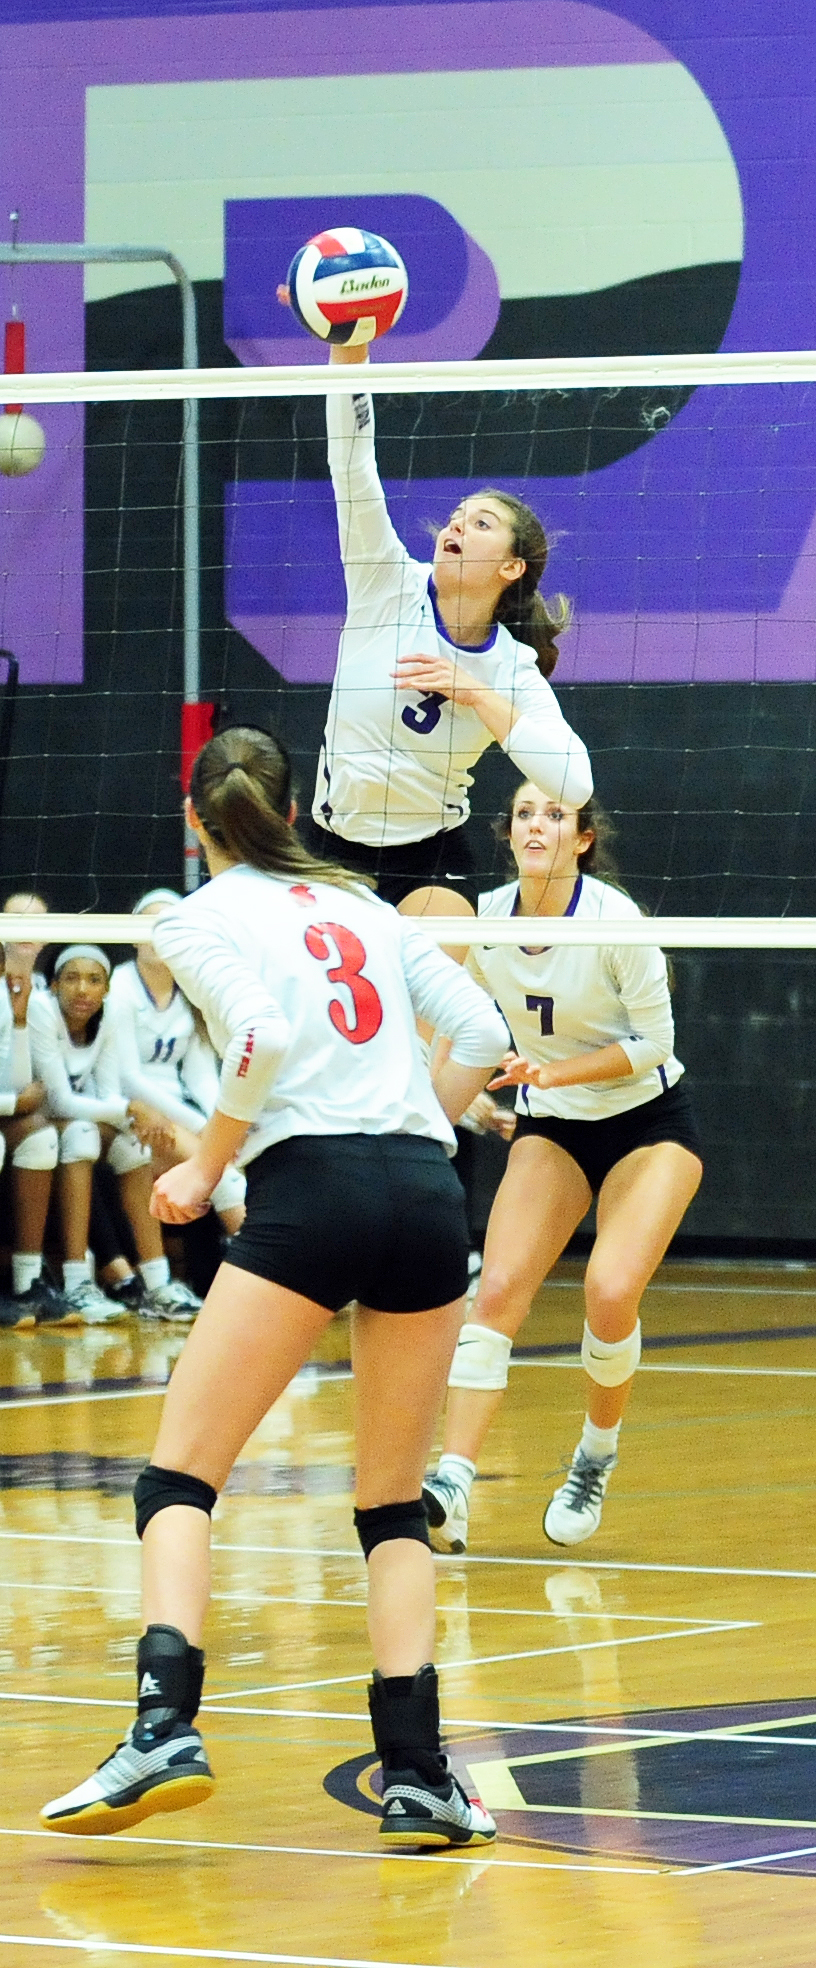 NICK INGRAM/Citizen photo Park Hill South senior Sarah Knight (3) hits a spike against Park Hill in the Class 4 District 16 championship match held Wednesday, Oct. 19 at Park Hill South High School in Riverside, Mo.